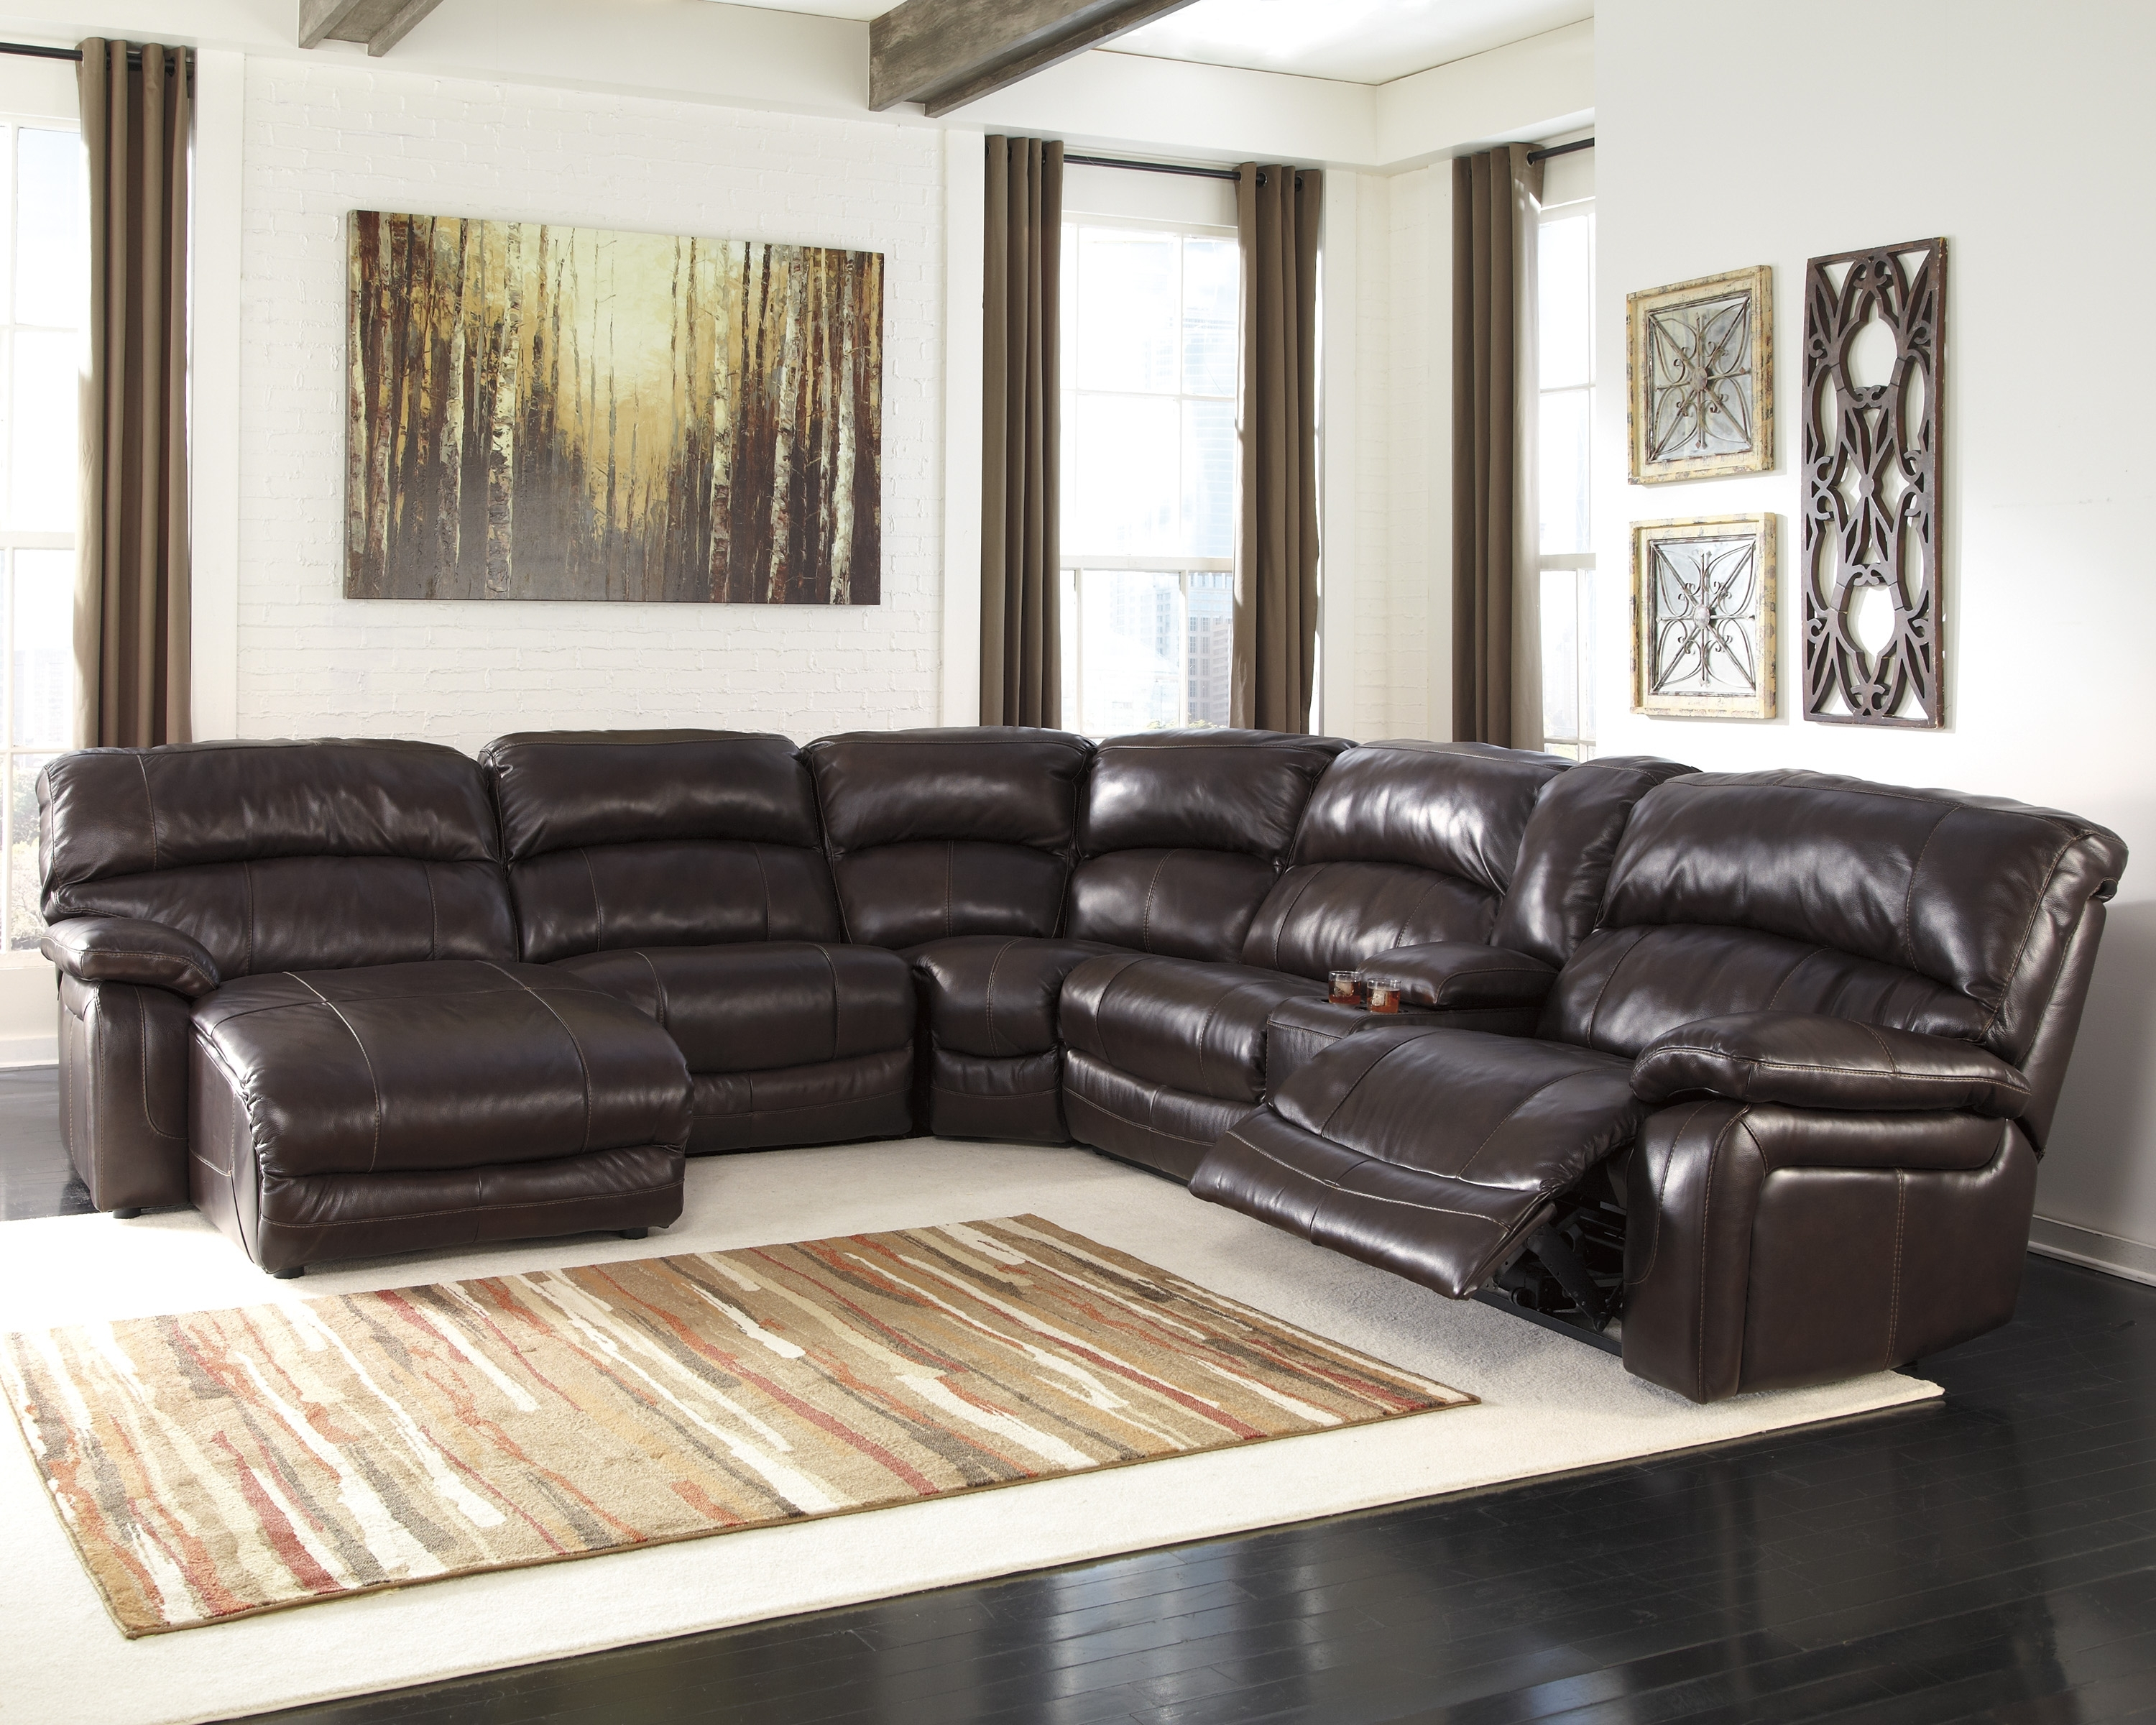 Popular Extraordinary Large Leather Sectional Sofas 24 For Ashley Within Huntsville Al Sectional Sofas (View 14 of 15)